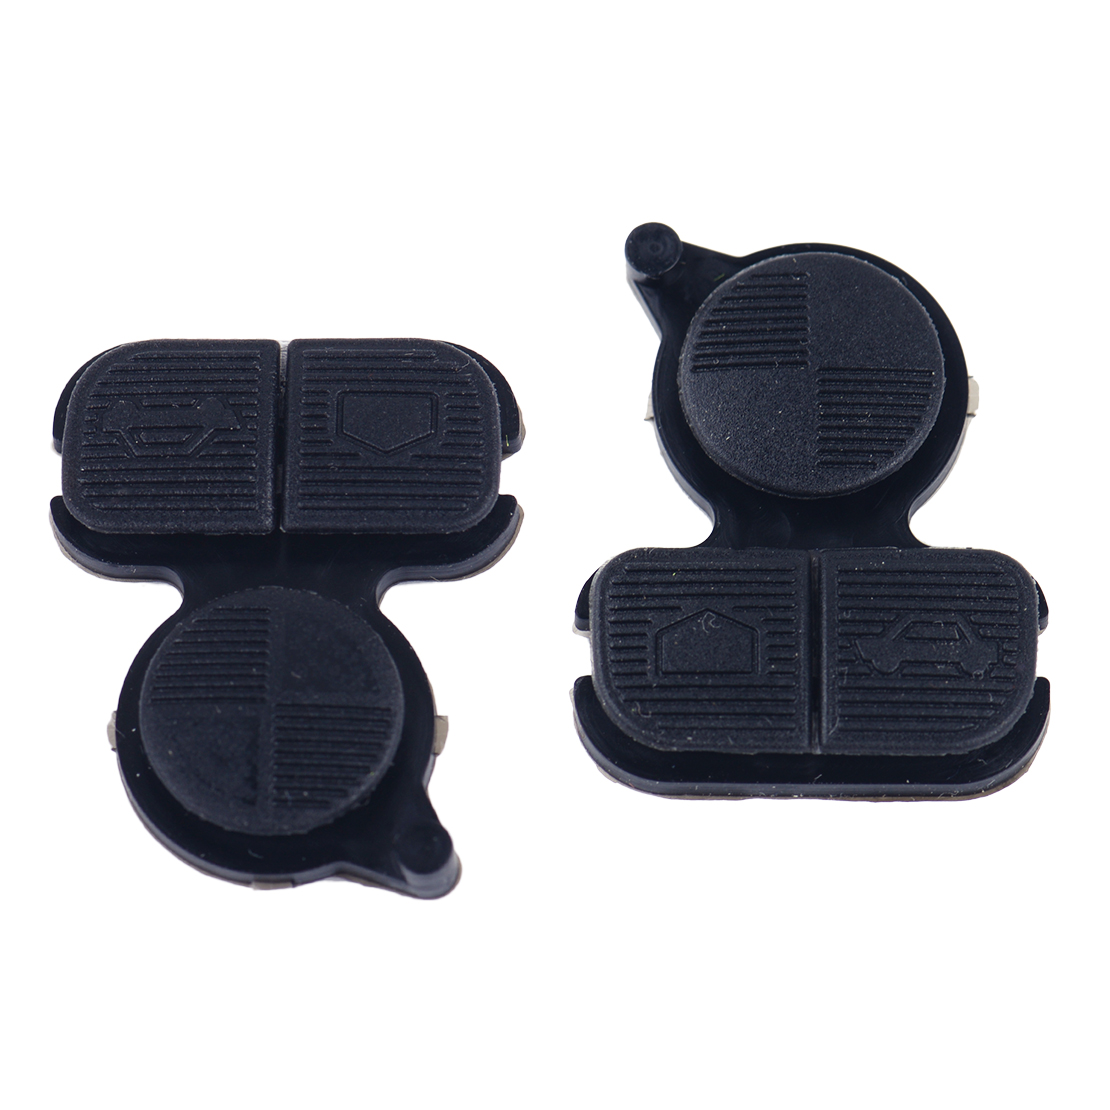 US $2 2 24% OFF CITALL Car 2pcs Replacement Entry Remote Key 3 Buttons  Repair Pad Keys Fob Shell Case Housing Fit for BMW 3 5 7 M3 M5 X5 Z3 Z8-in  Key